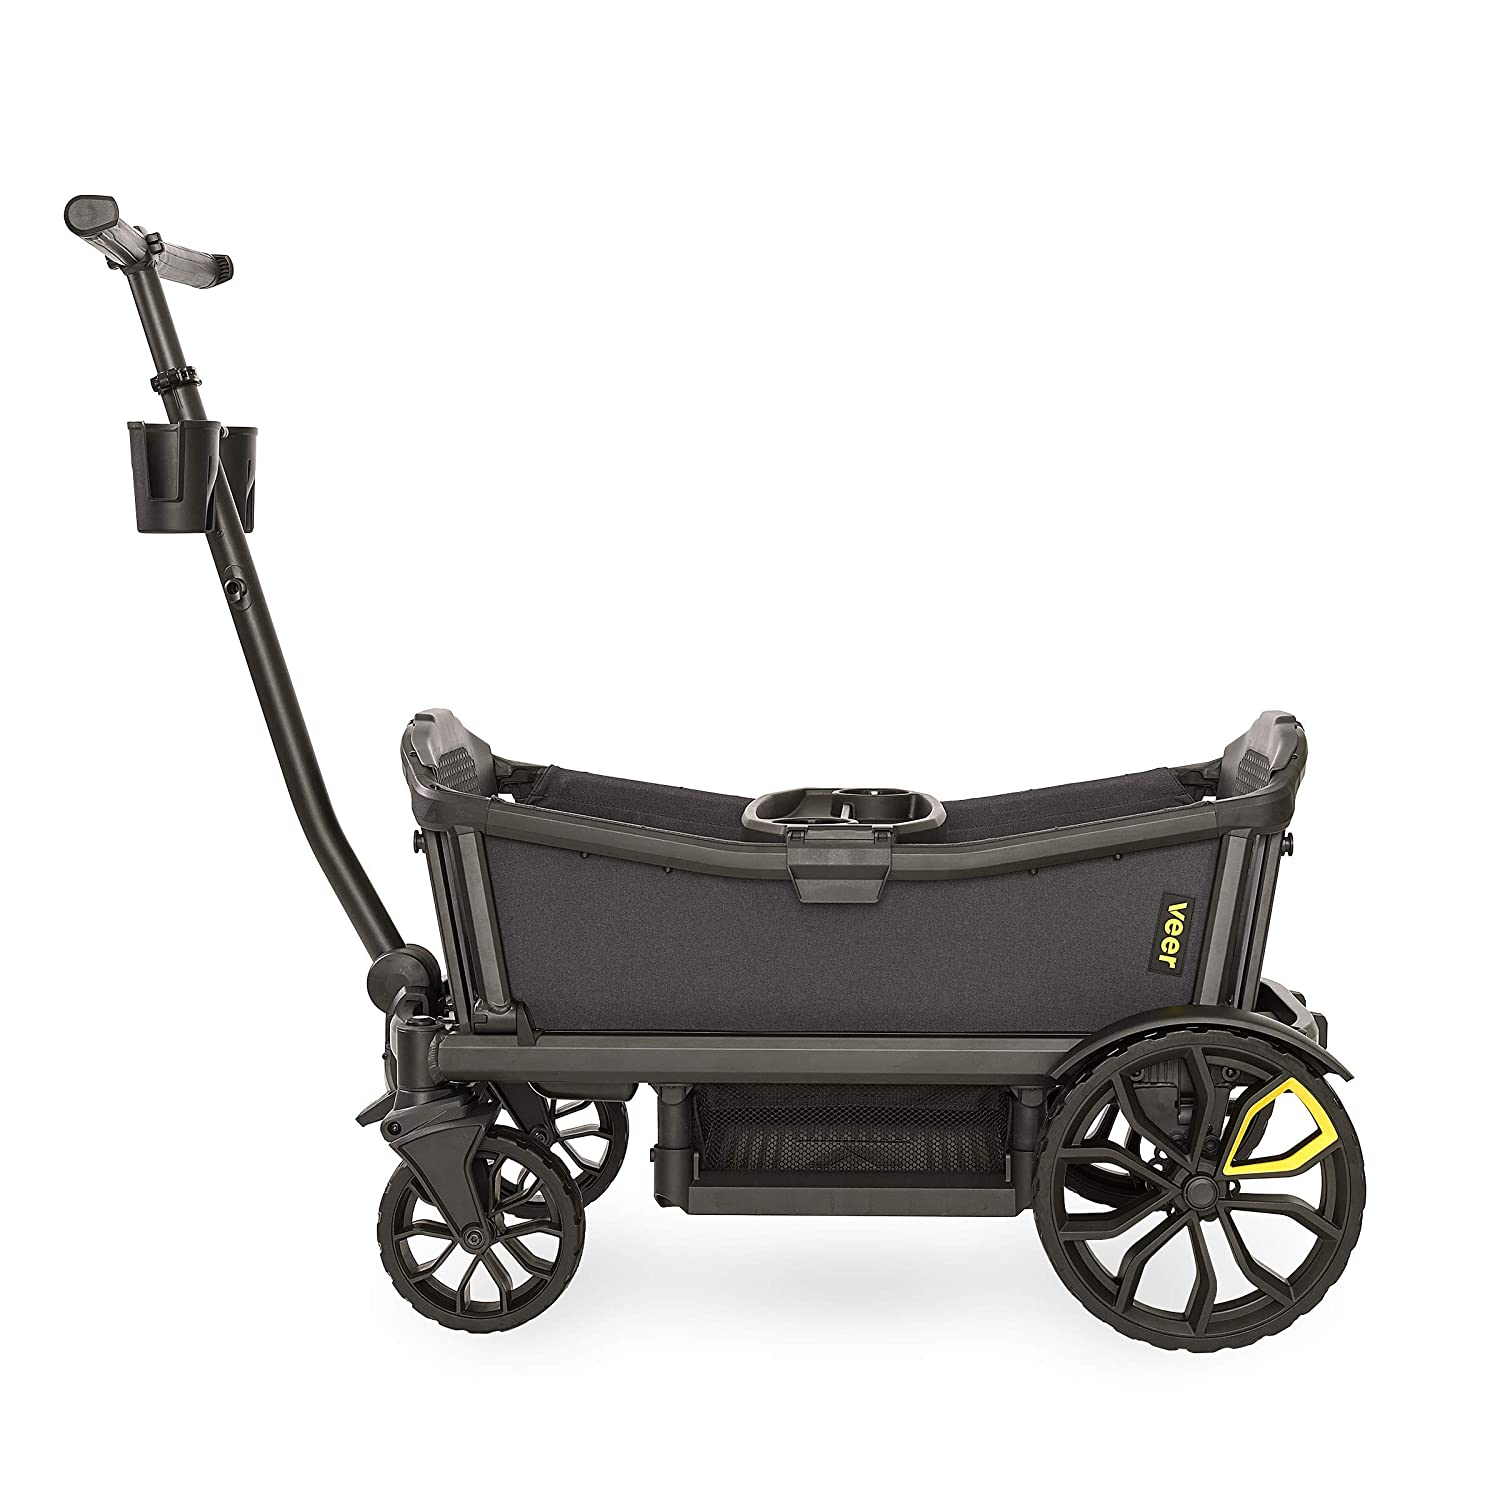 Top 10 Best Wagons for Kids Reviews in 2020 9